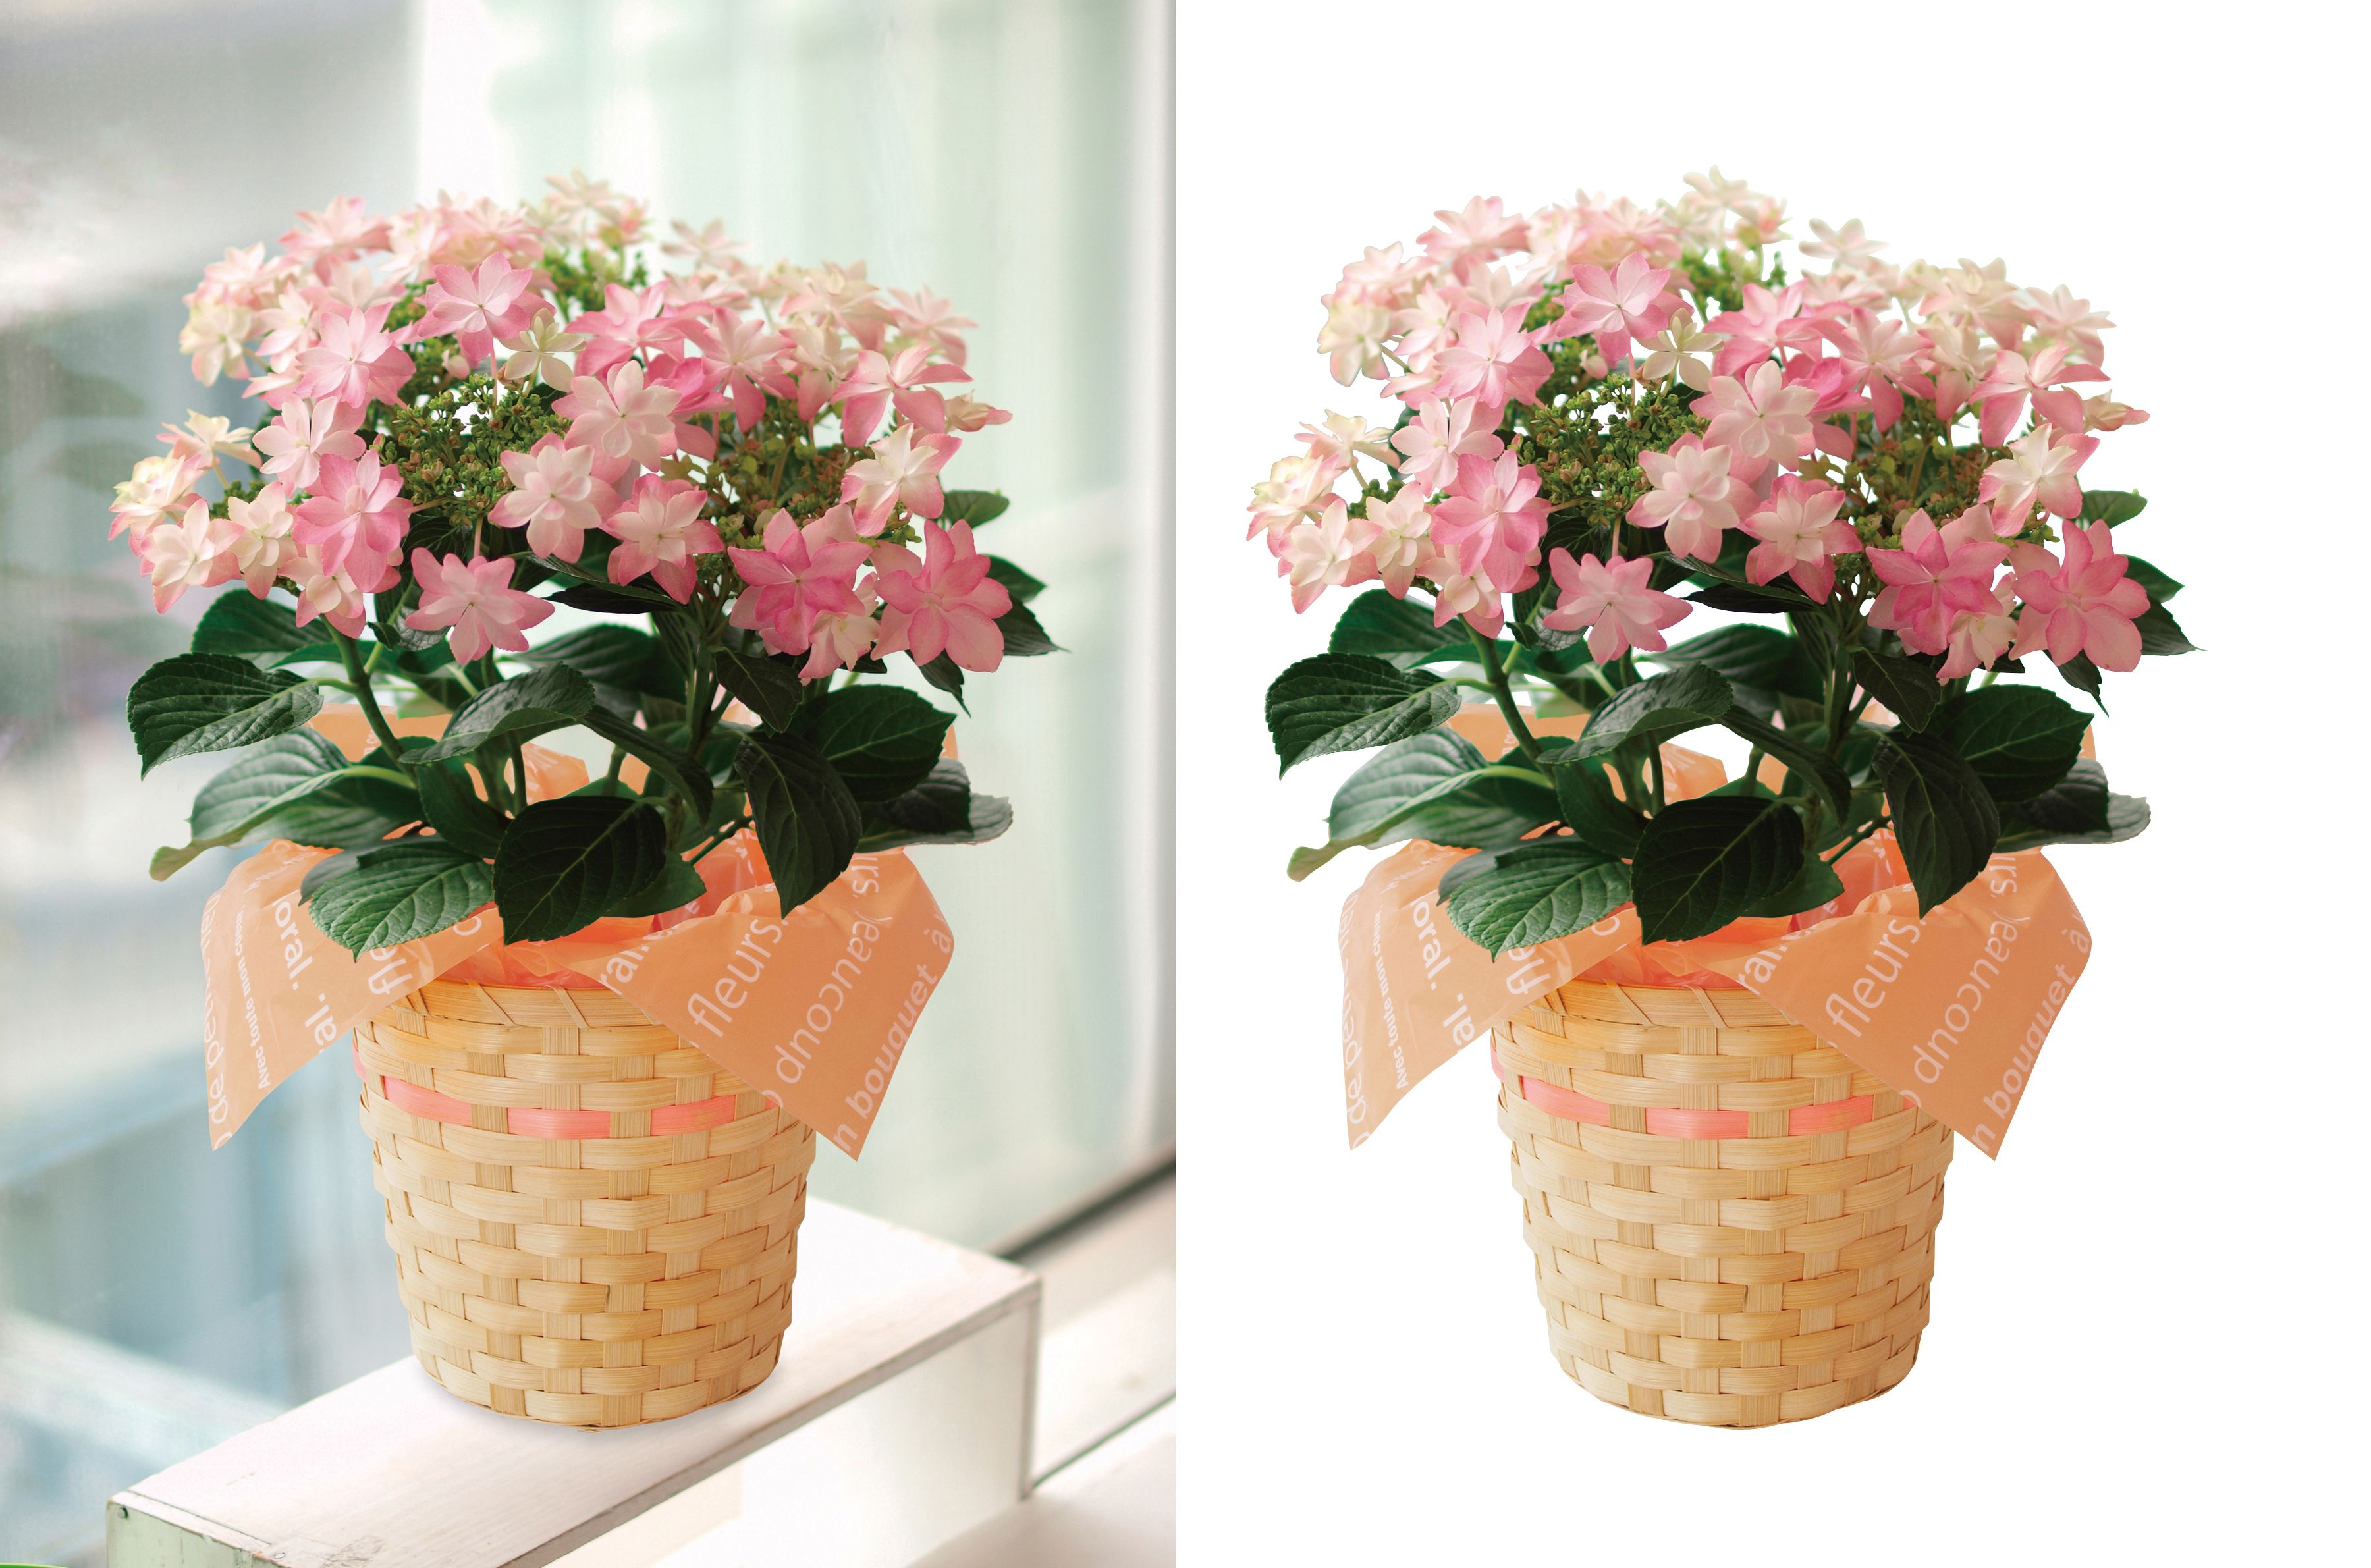 This clipping path tutorial will show you how to